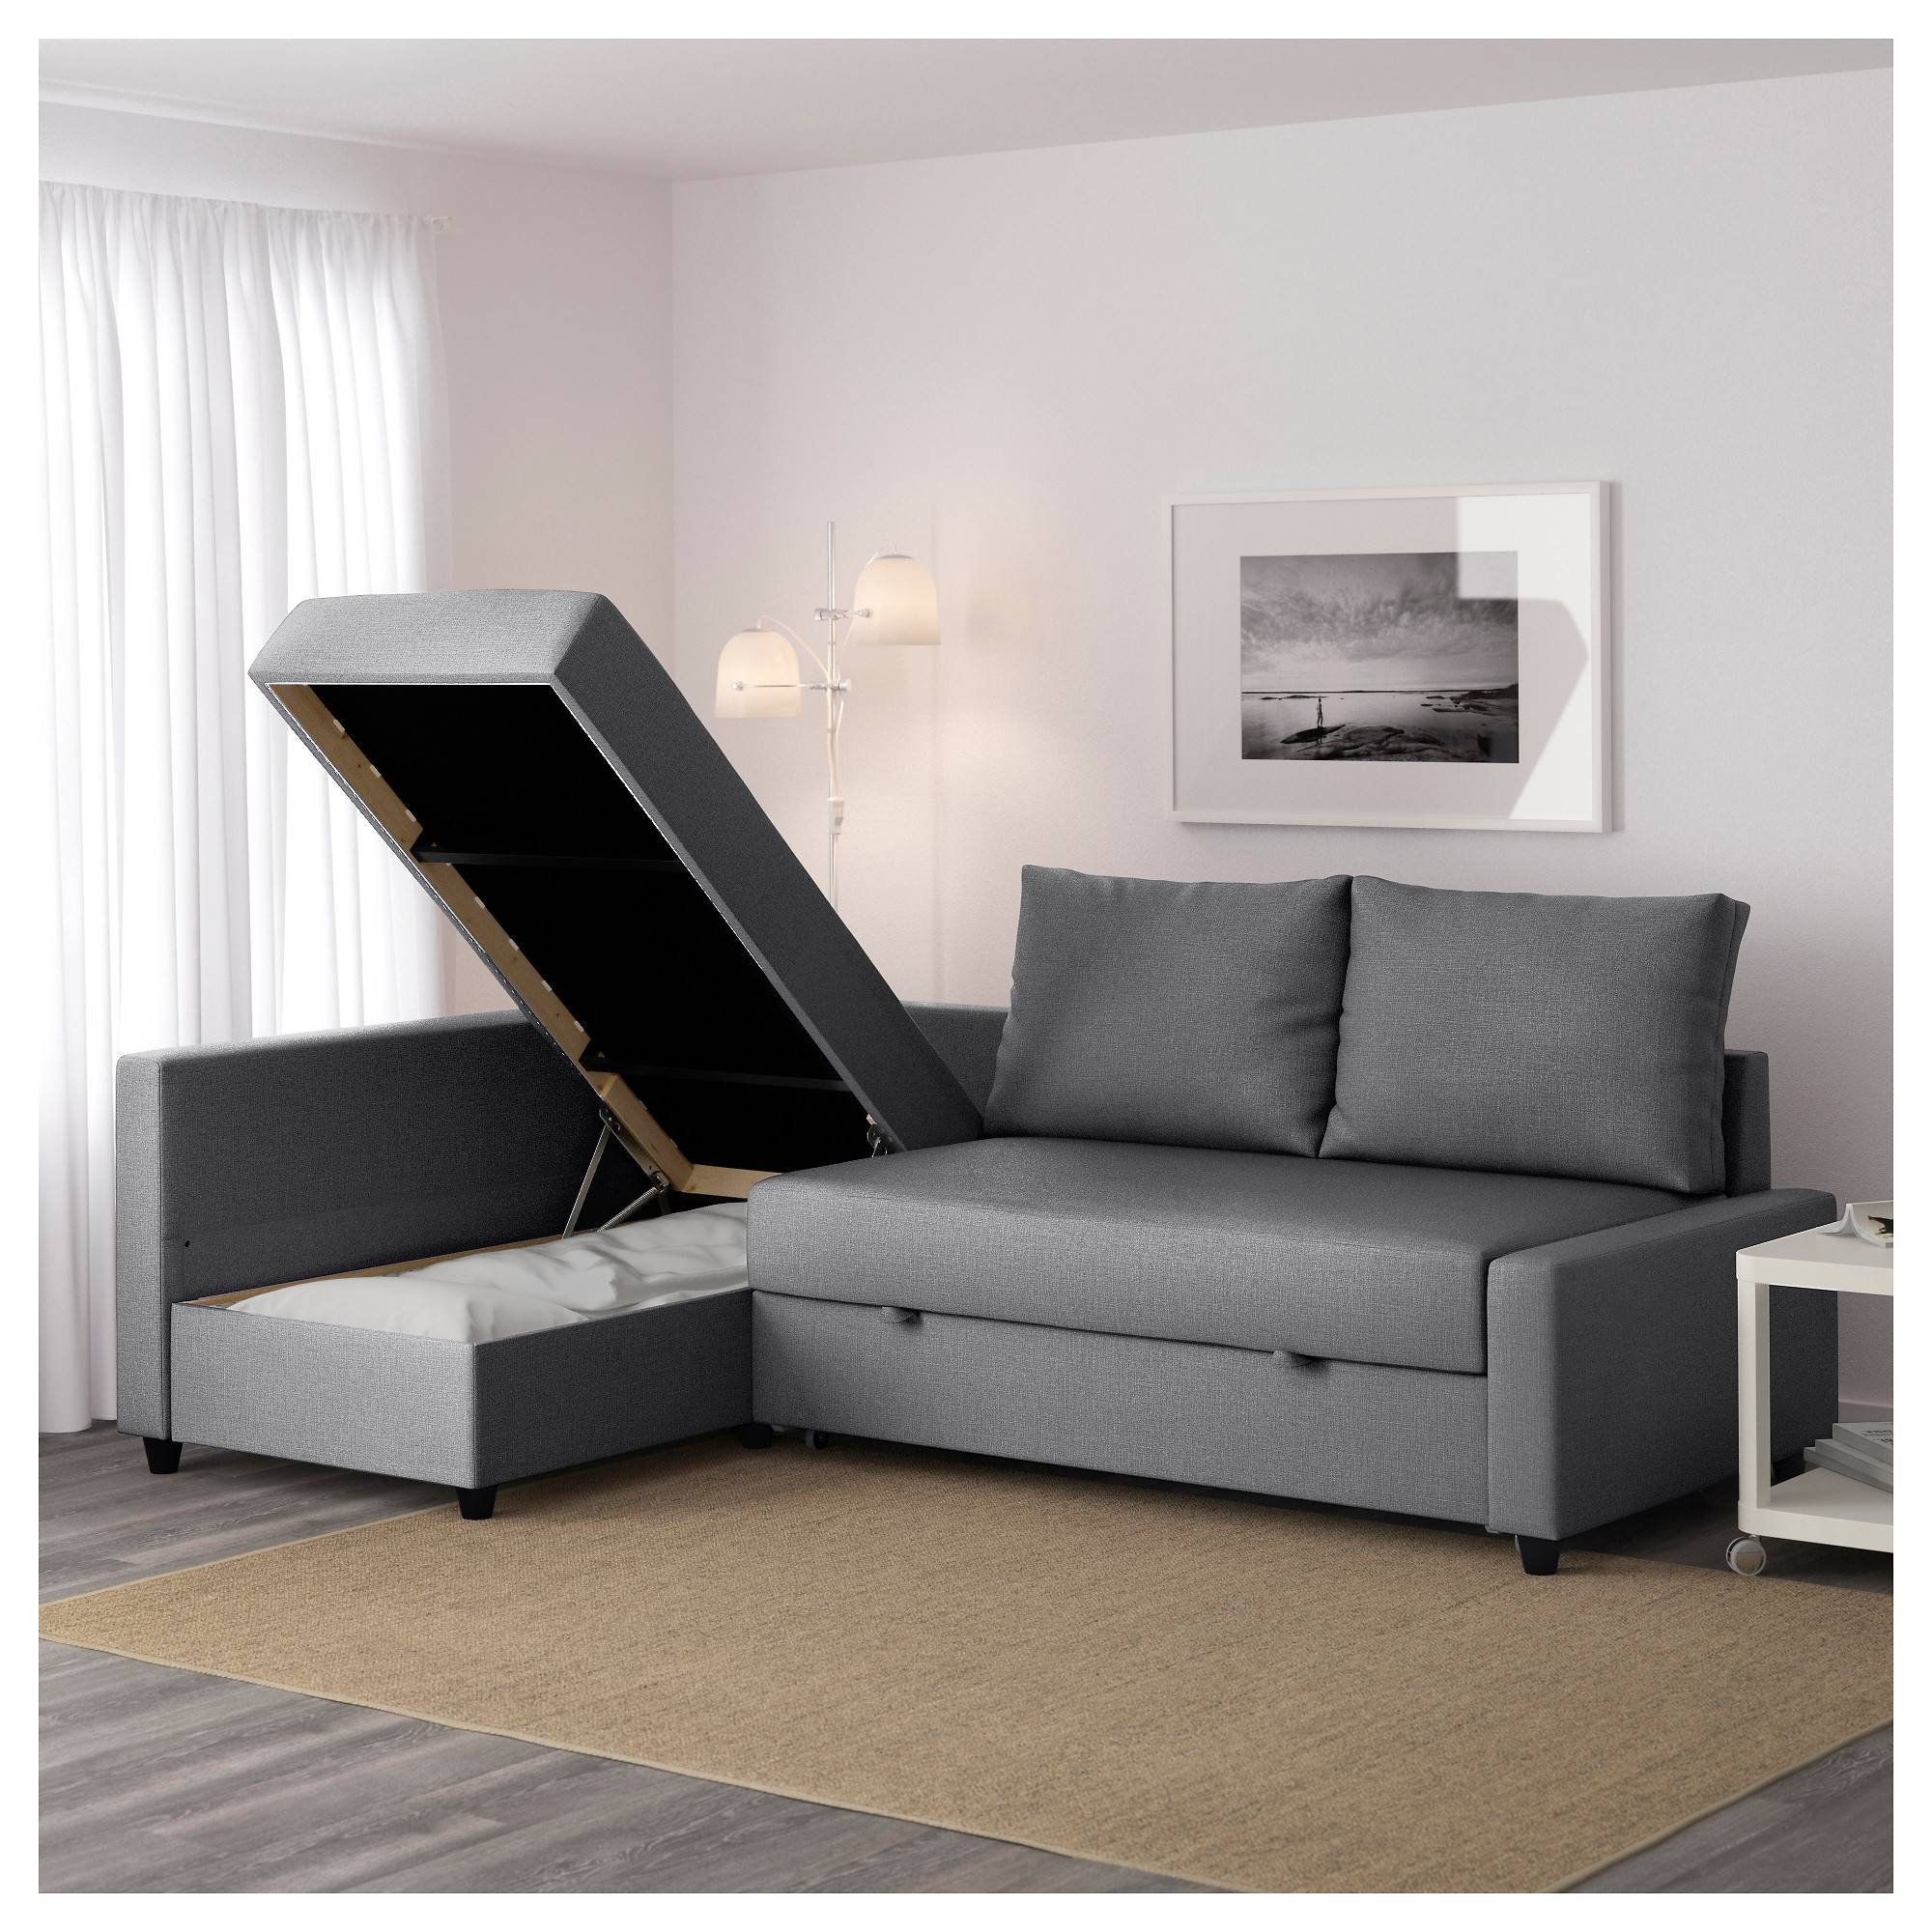 Friheten Corner Sofa-Bed With Storage Skiftebo Dark Grey - Ikea in Cheap Corner Sofa Beds (Image 10 of 30)